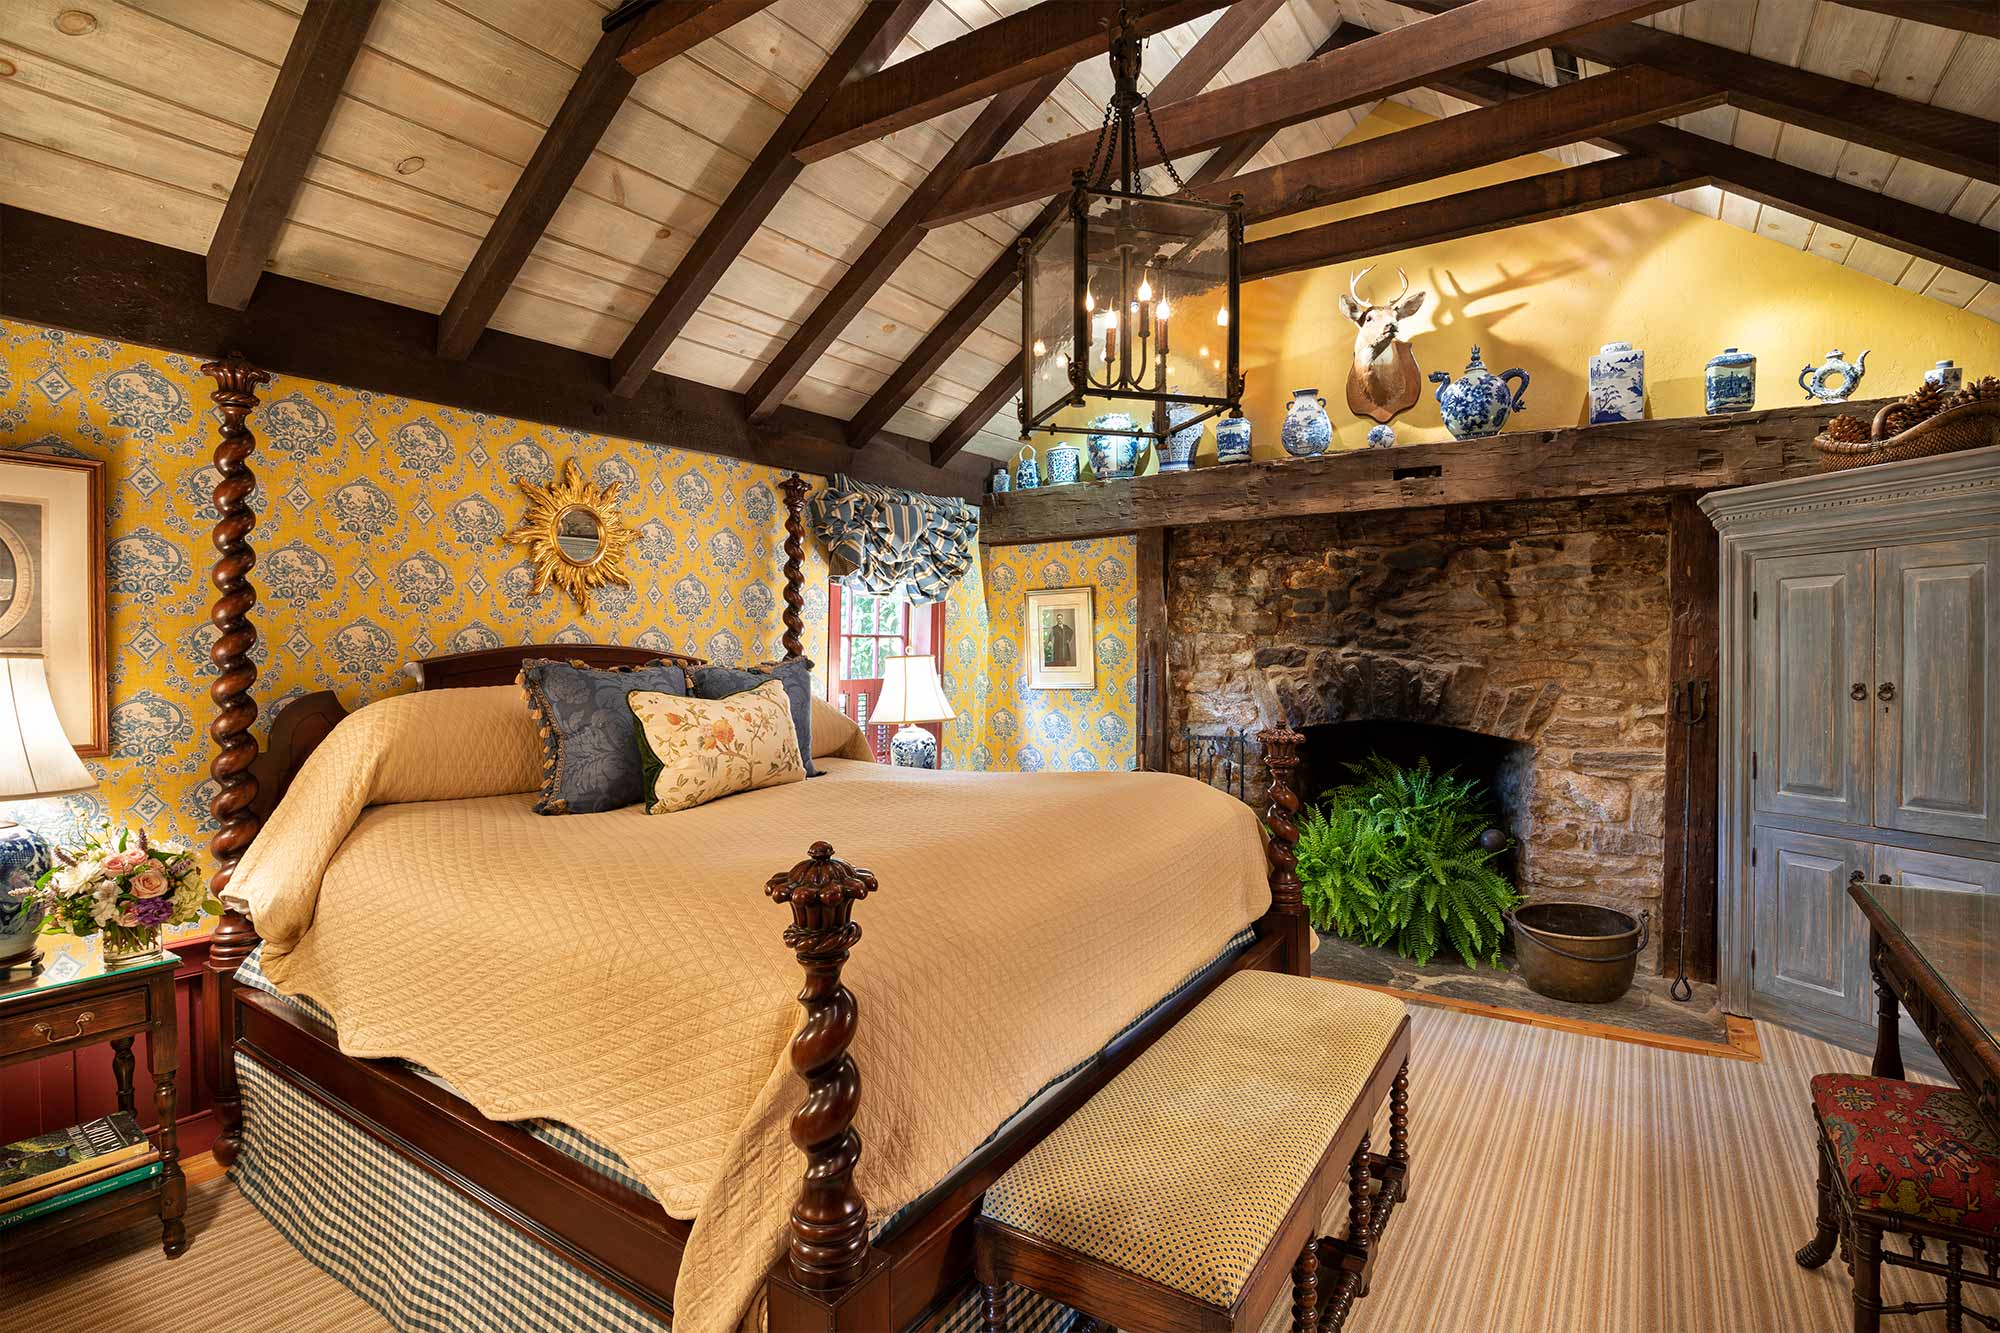 A large master bedroom with a king sized bed and large, stone fireplace.